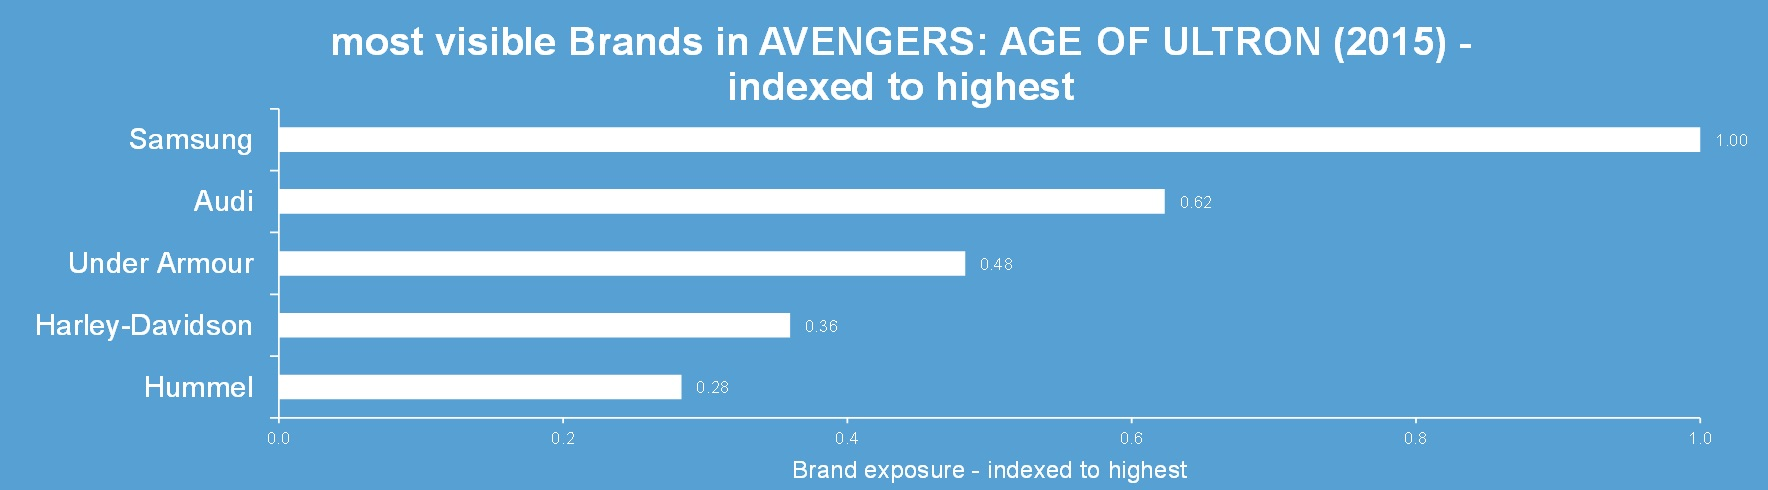 brands in avengers age of ultron